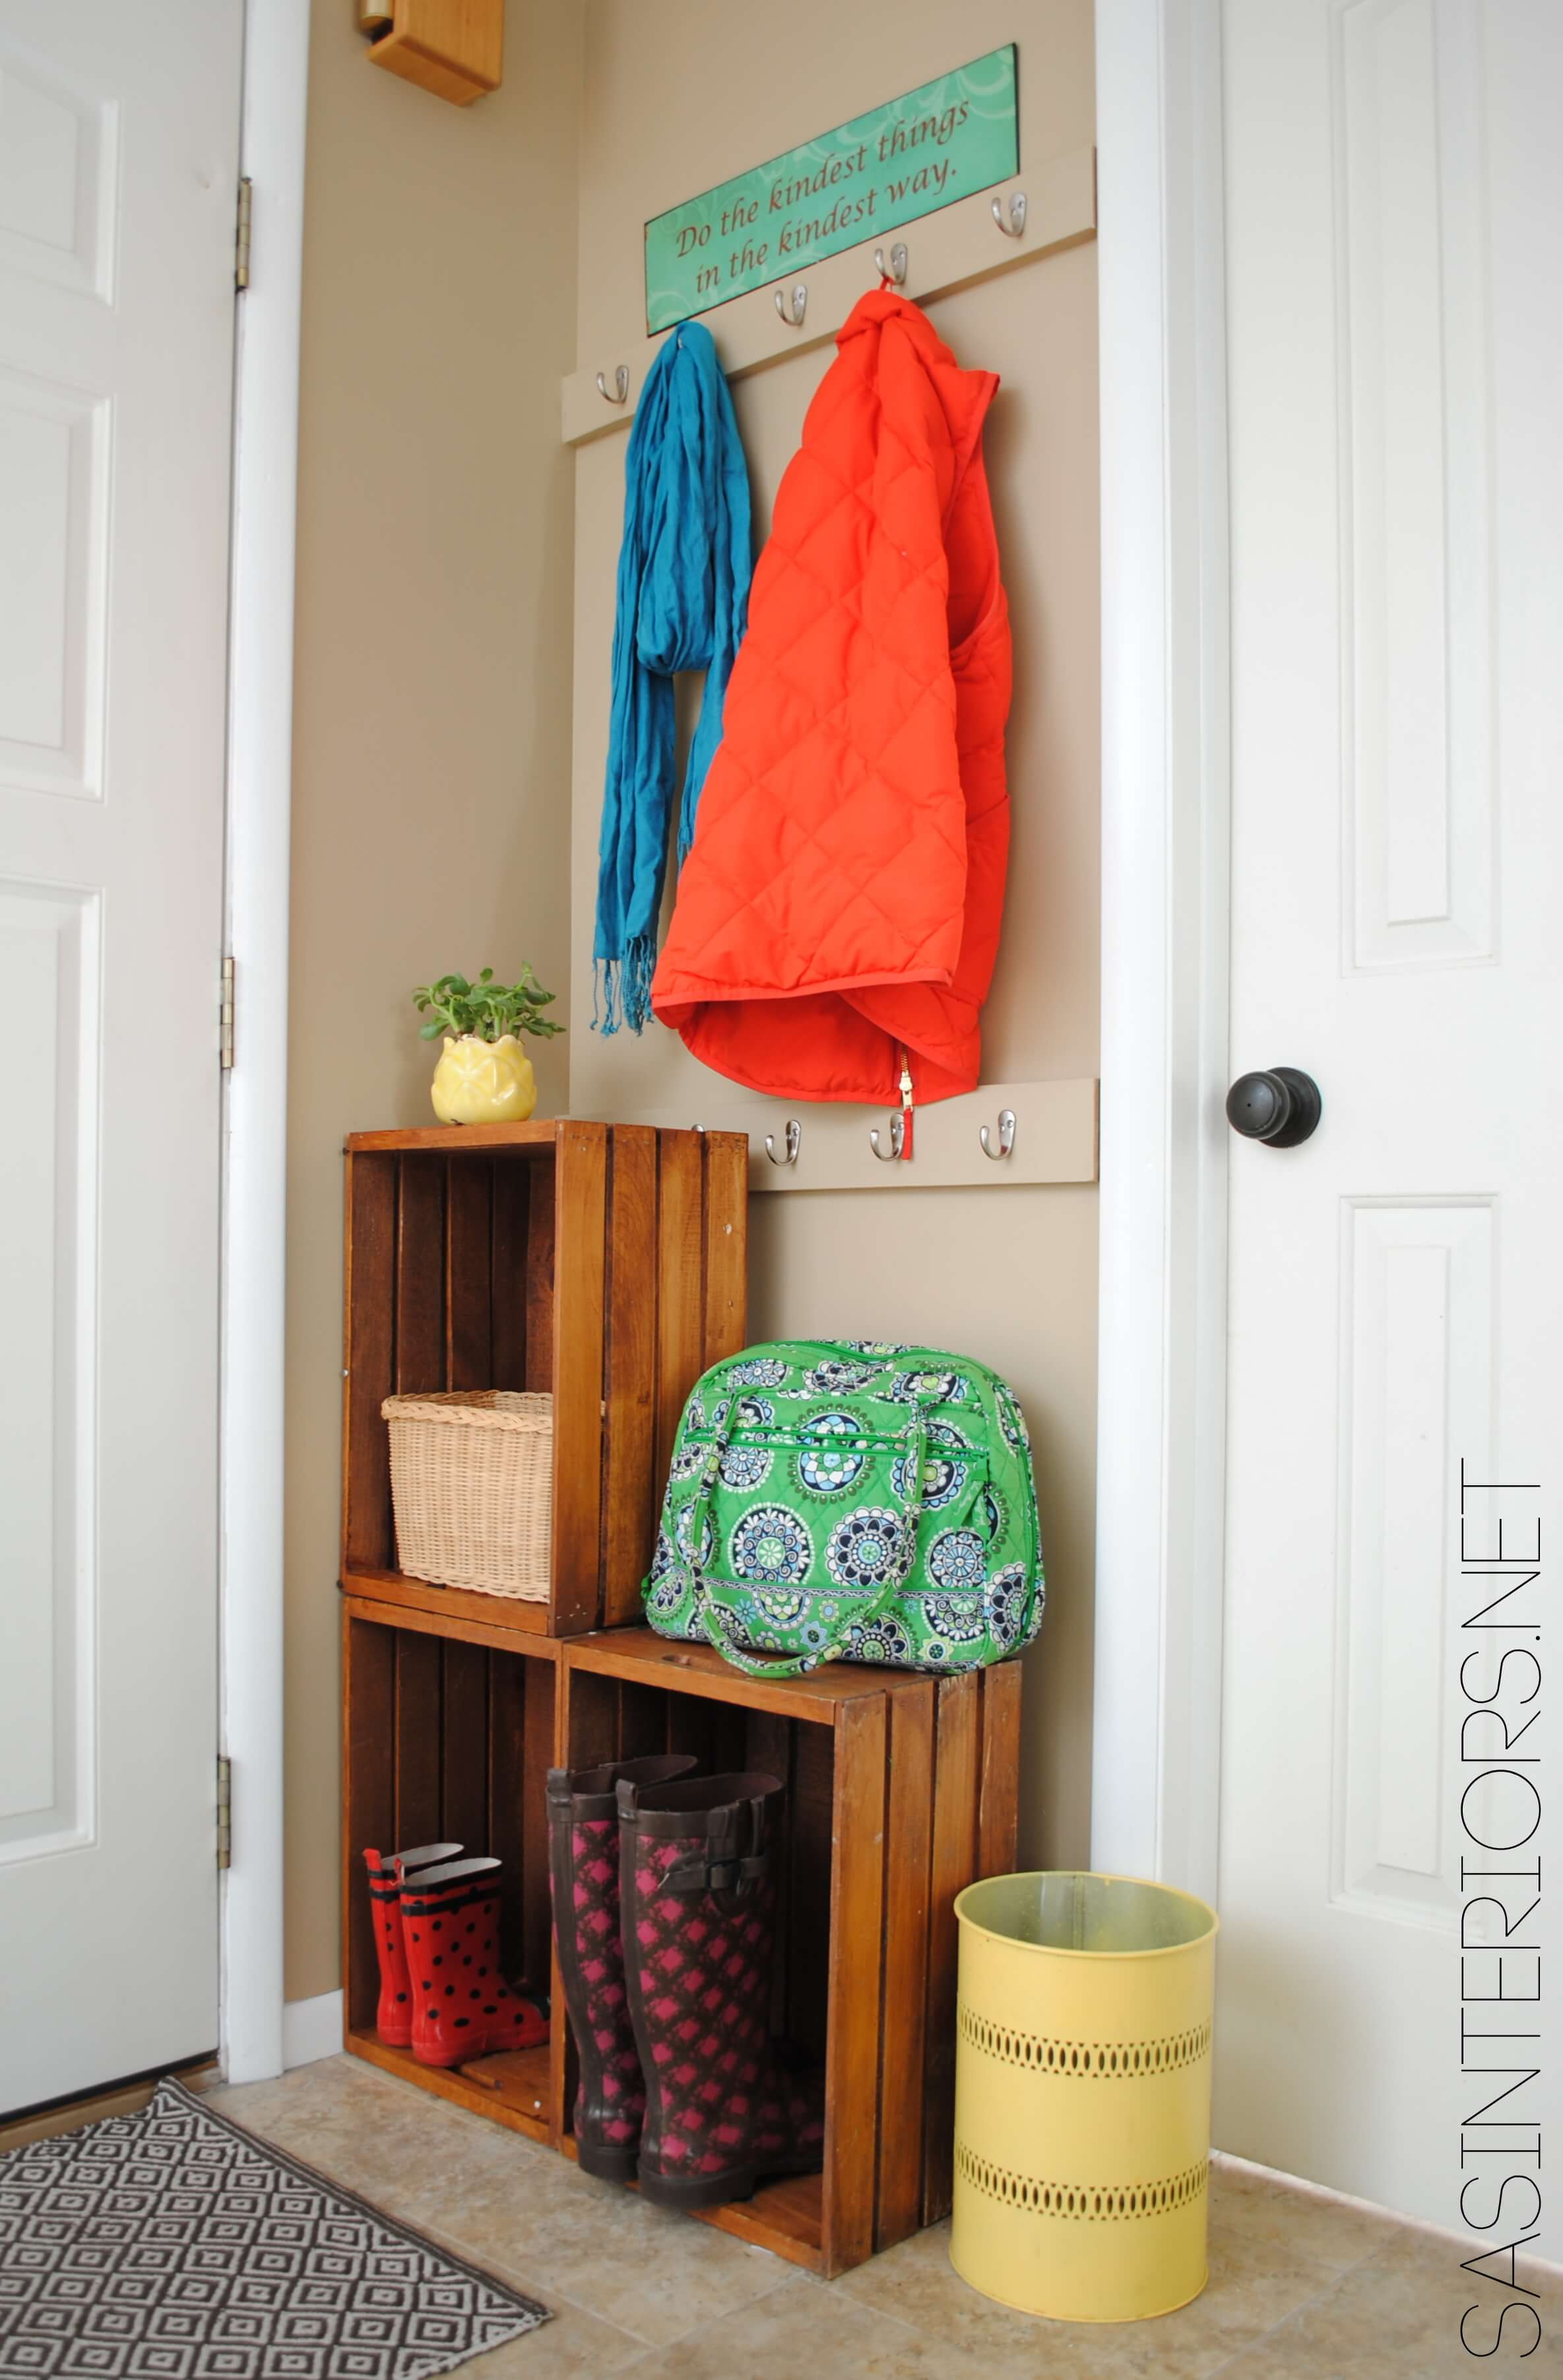 Modern Stacked Crates Create Shelf Space 2018 Small Entryway Ideas Storage Small Entryway Ideas Designs Tight Small Entryway Decor Ideas houzz 01 Small Entryway Ideas